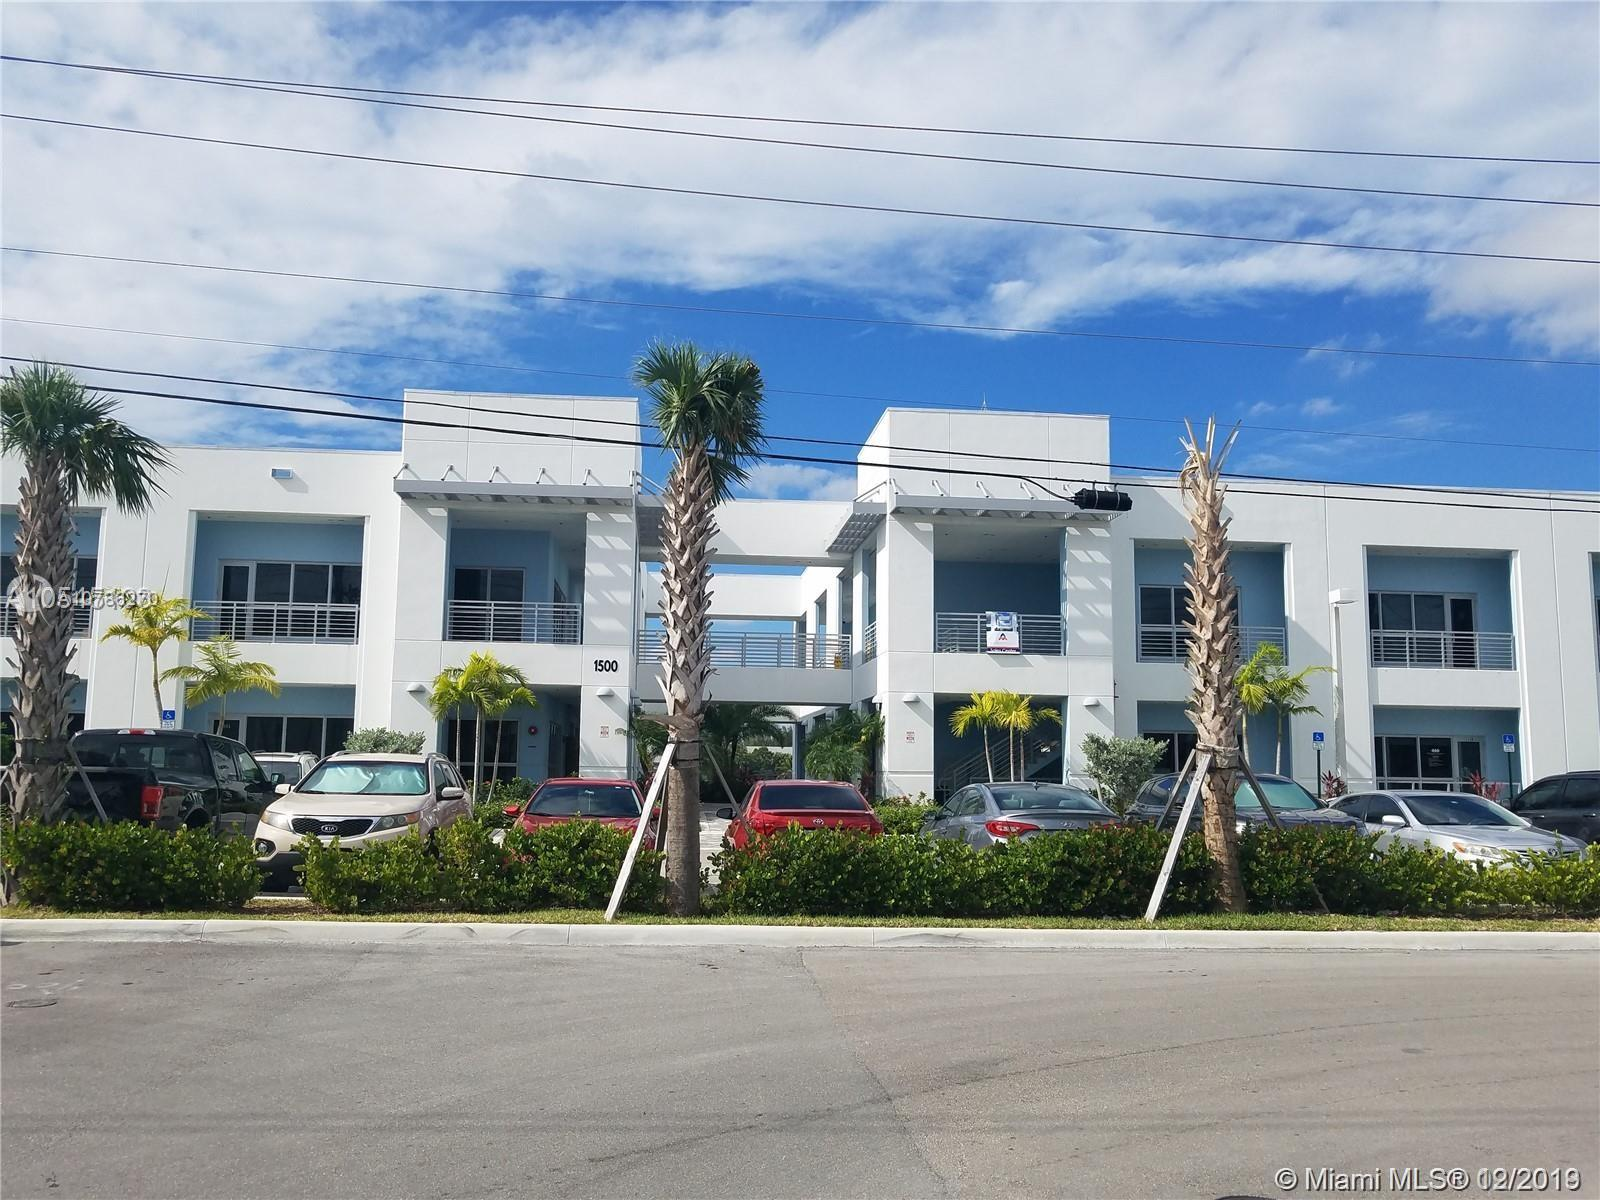 1500 NW 89 Ct # 208, Doral, Florida 33172, ,Commercial Sale,For Sale,1500 NW 89 Ct # 208,A10786270